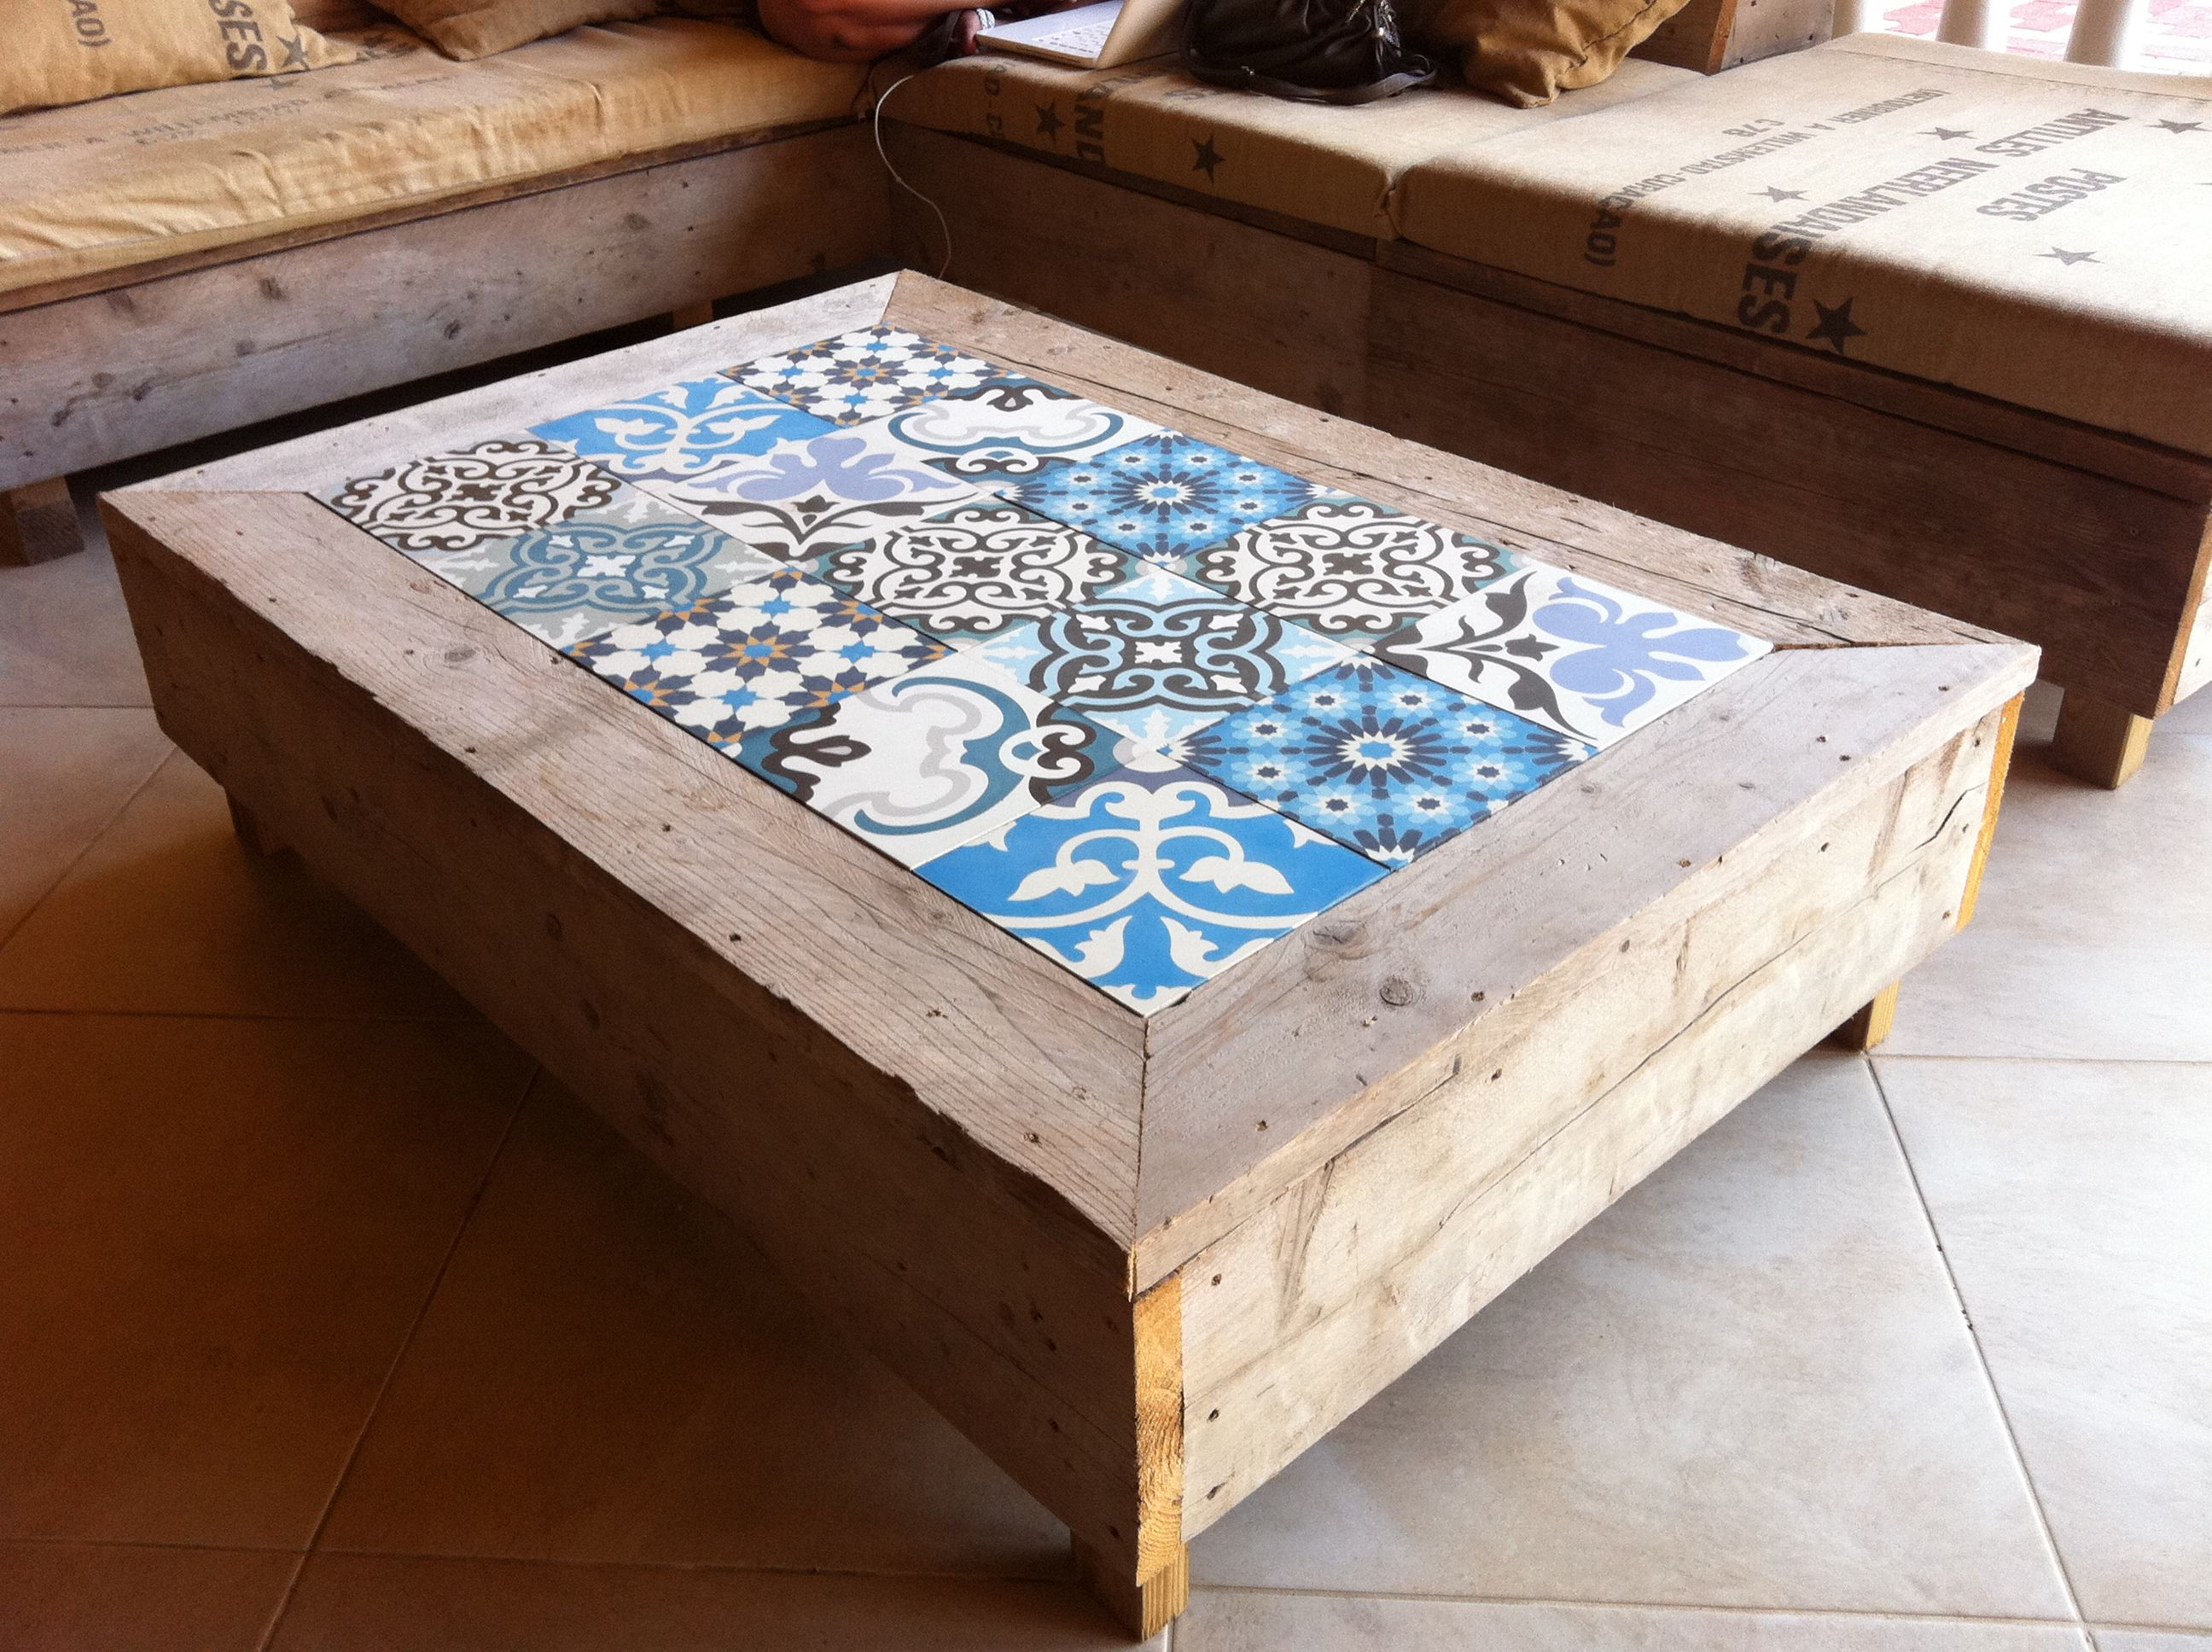 Houten Tegels Balkon : Cement tiles used in furniture. we see it more and more. great